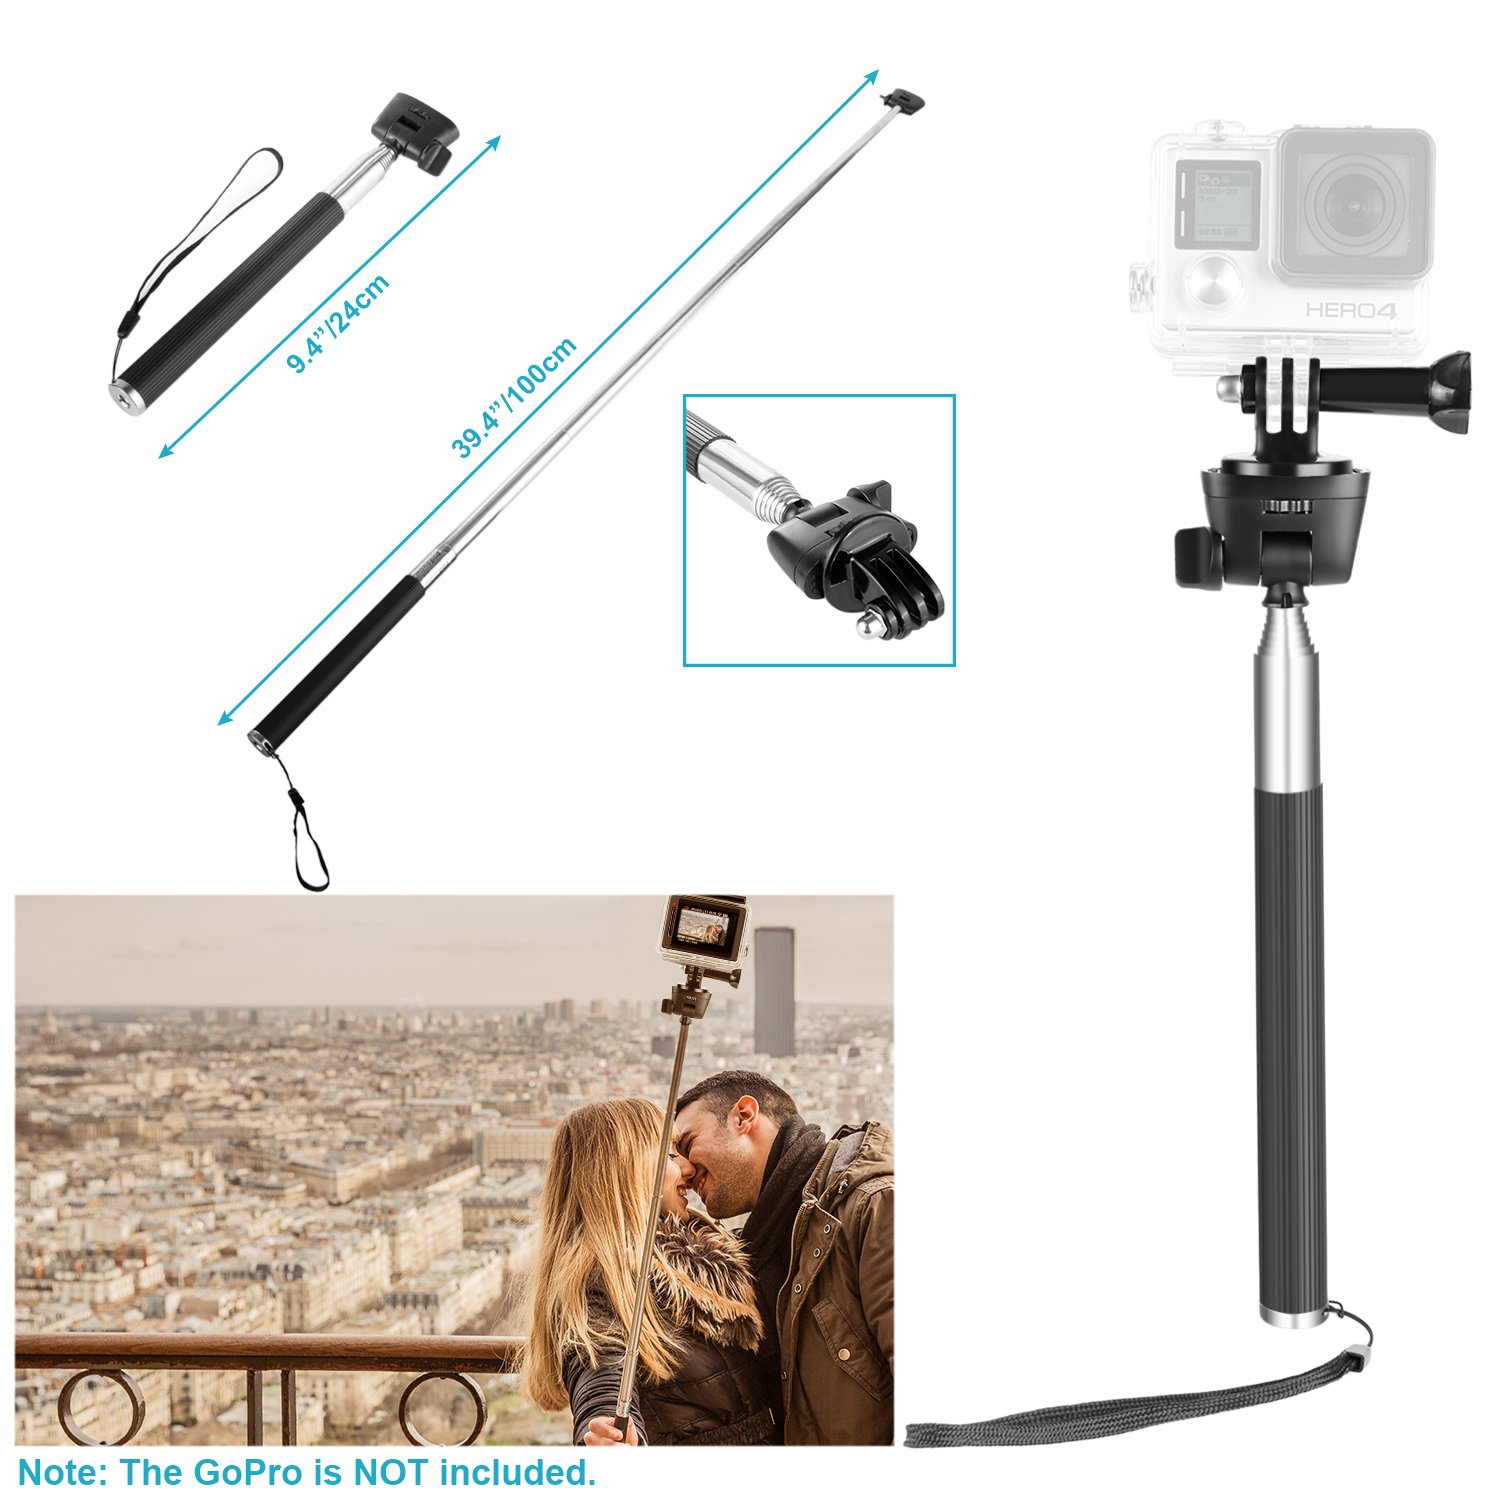 Hero Session Neewer 9-in-1 Action Camera Accessory Kit for GoPro Hero 7 6 5 4 3 2 1 SJ4000//5000 Nikon and Sony Sports Camera Selfie Monopod Includes Car Suction Cup Floating Hand Grip and More